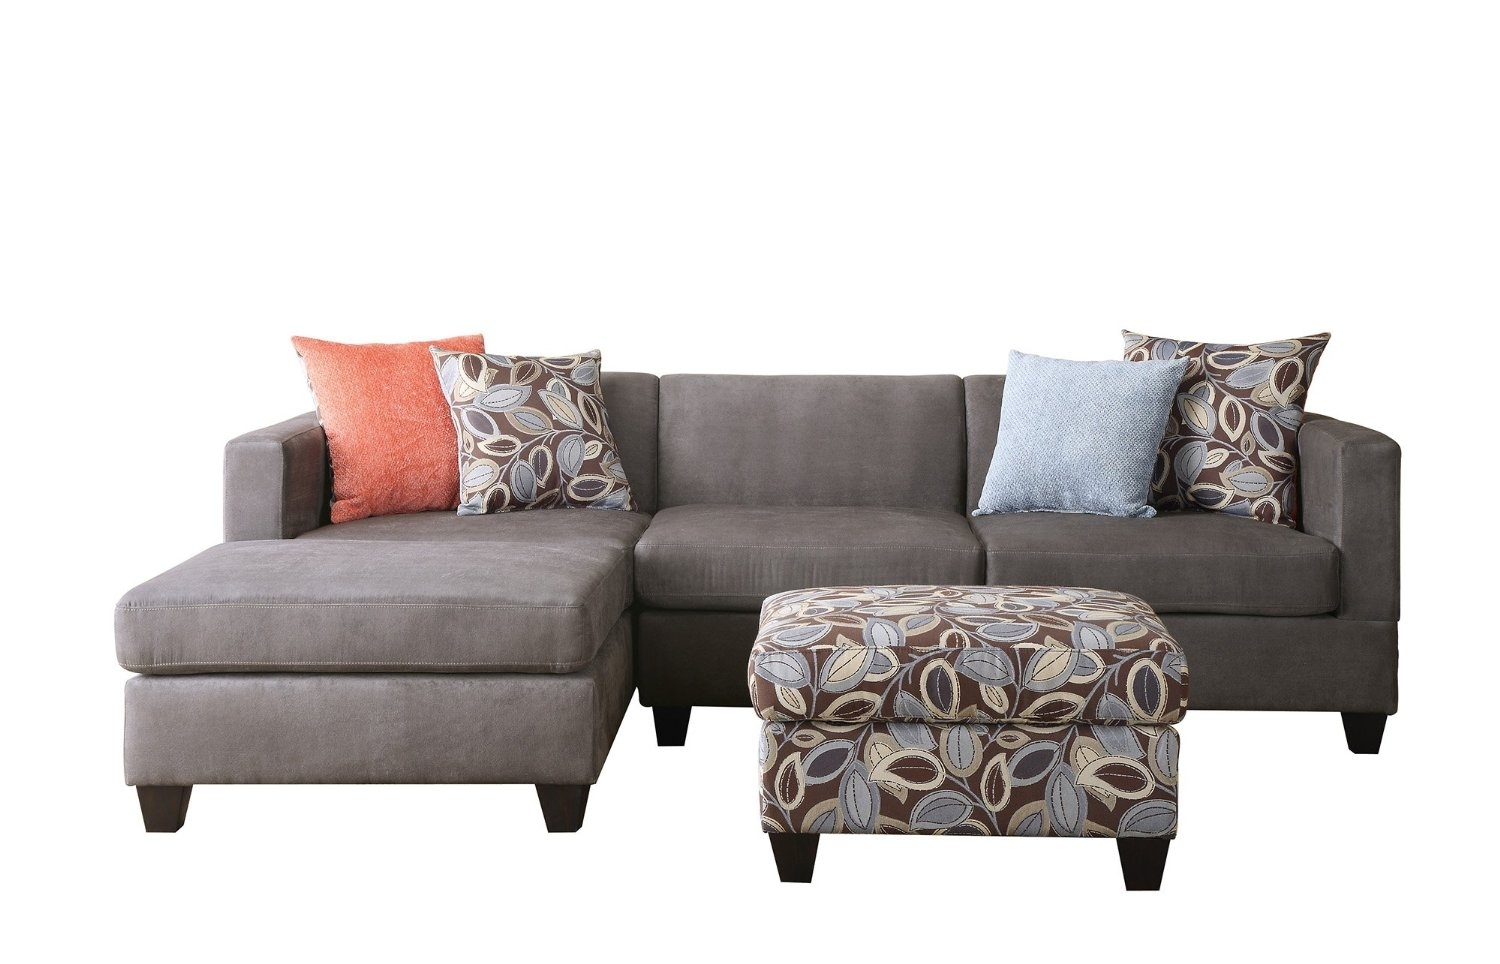 What To Know Before Buying A 3 Piece Sectional Sofa – Elites Home Decor With Regard To Cosmos Grey 2 Piece Sectionals With Laf Chaise (Image 24 of 25)